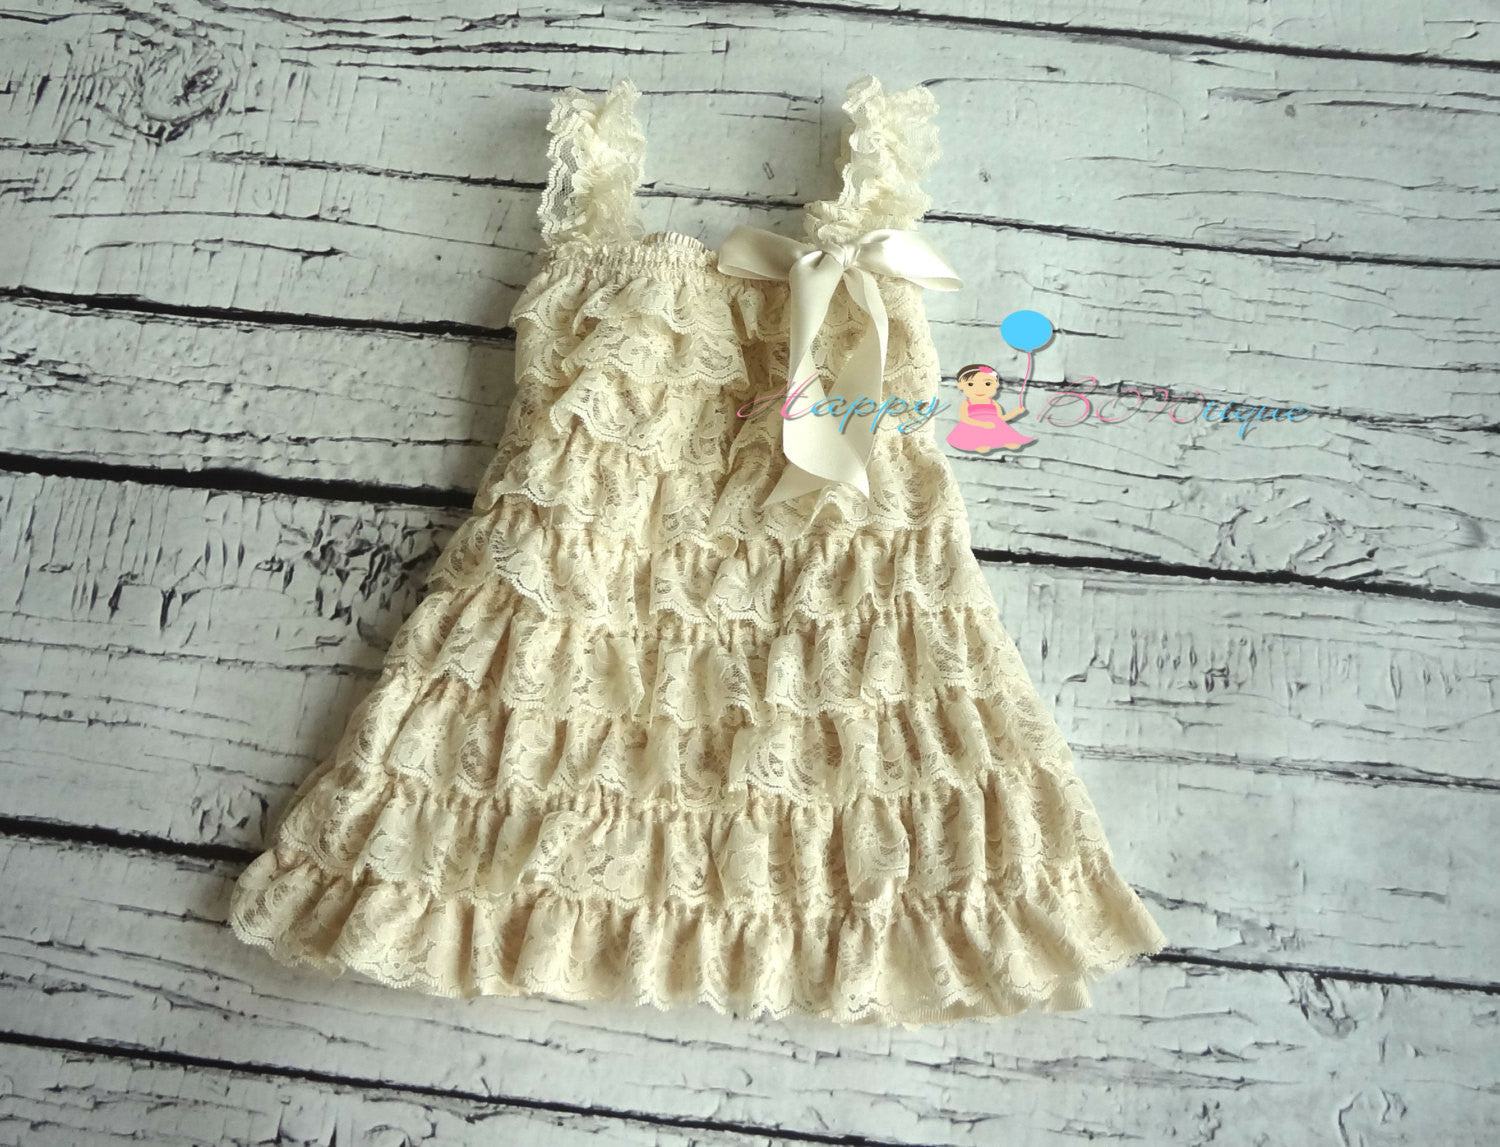 Burlap Flower girl dress/ Girl's Champagne Embellished Dress Set - Happy BOWtique - children's clothing, Baby Girl clothing